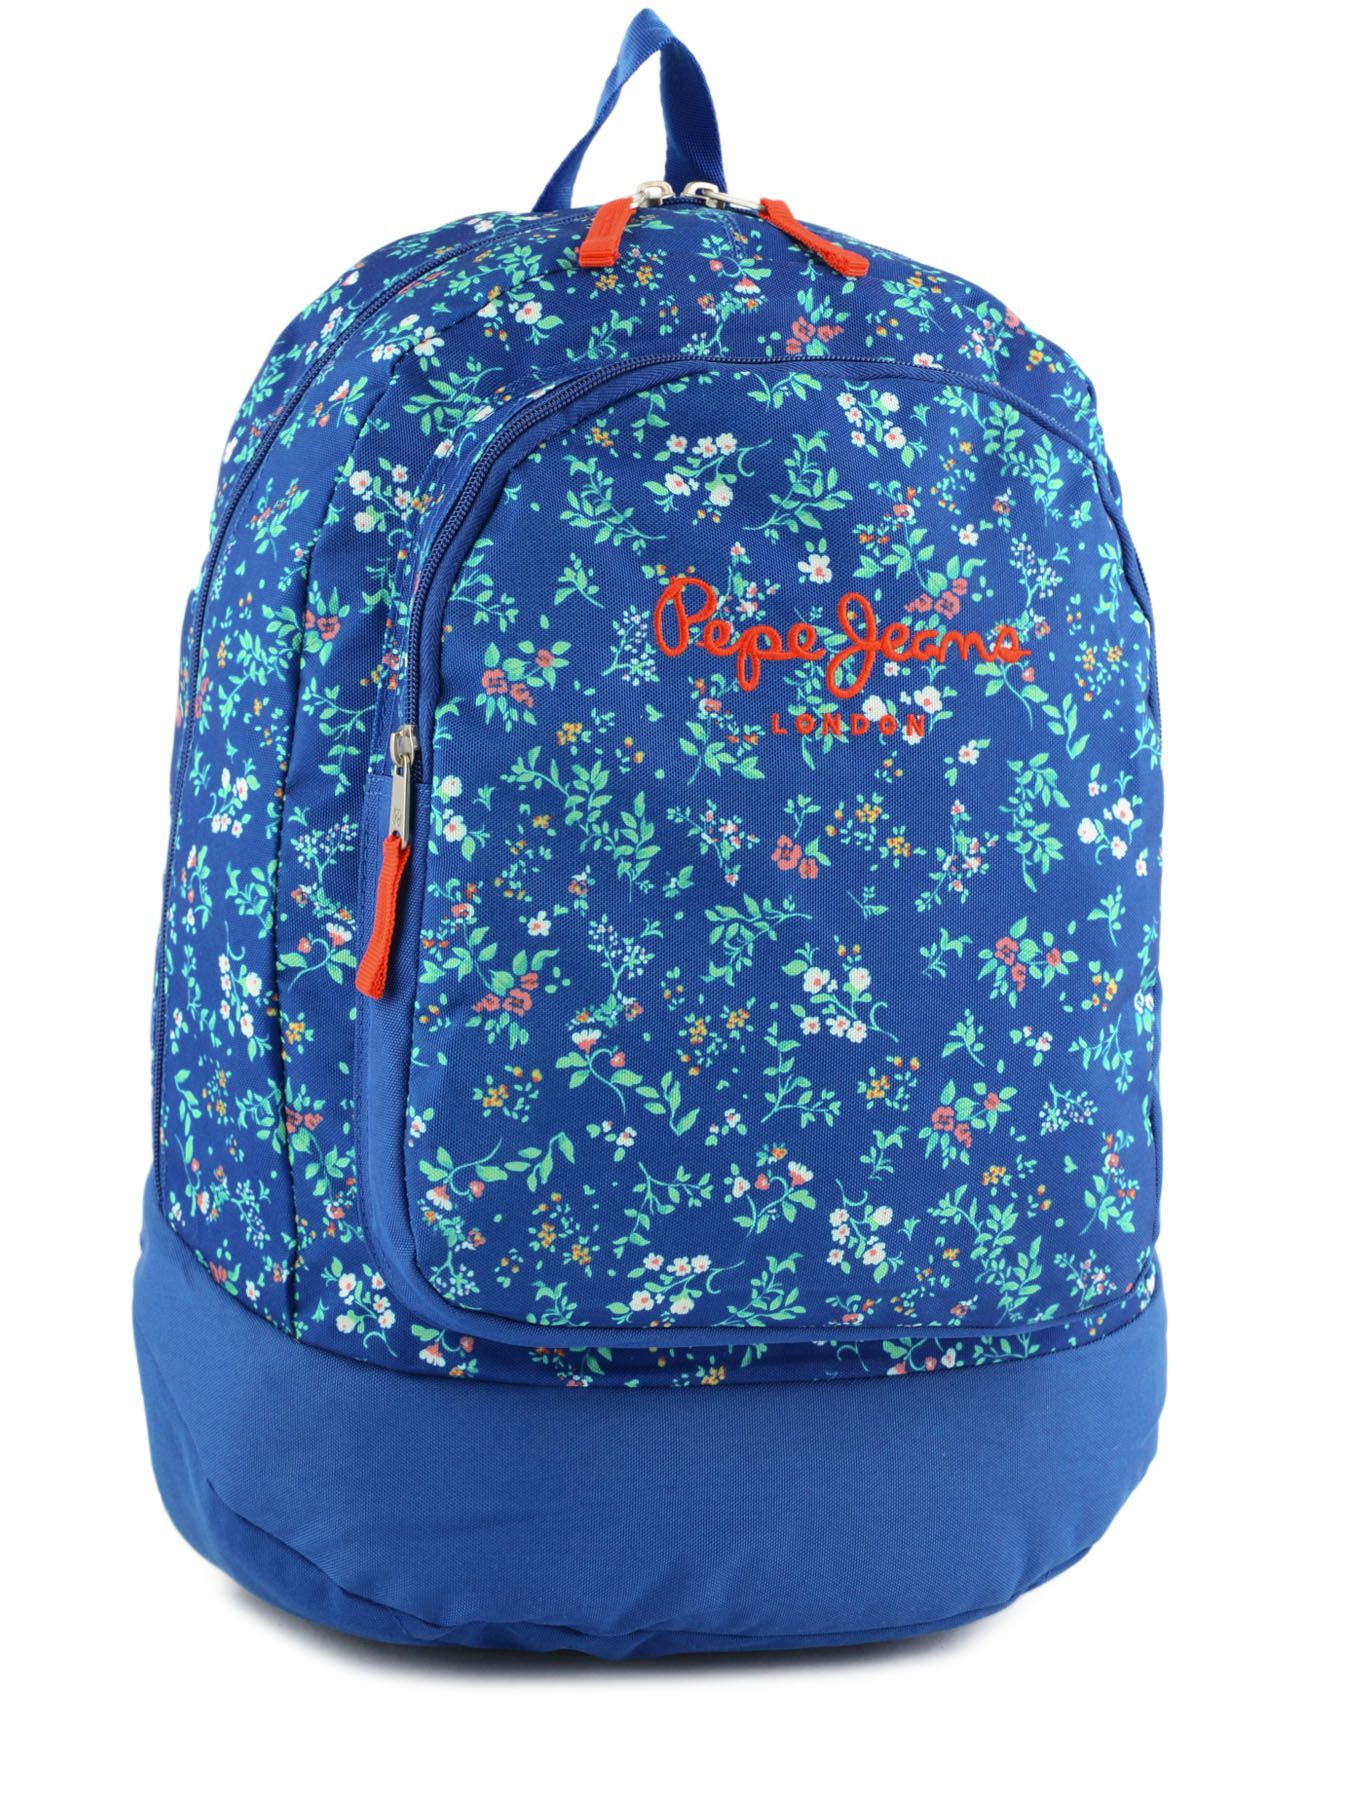 vicky pepe jeans backpack 60323 best prices. Black Bedroom Furniture Sets. Home Design Ideas